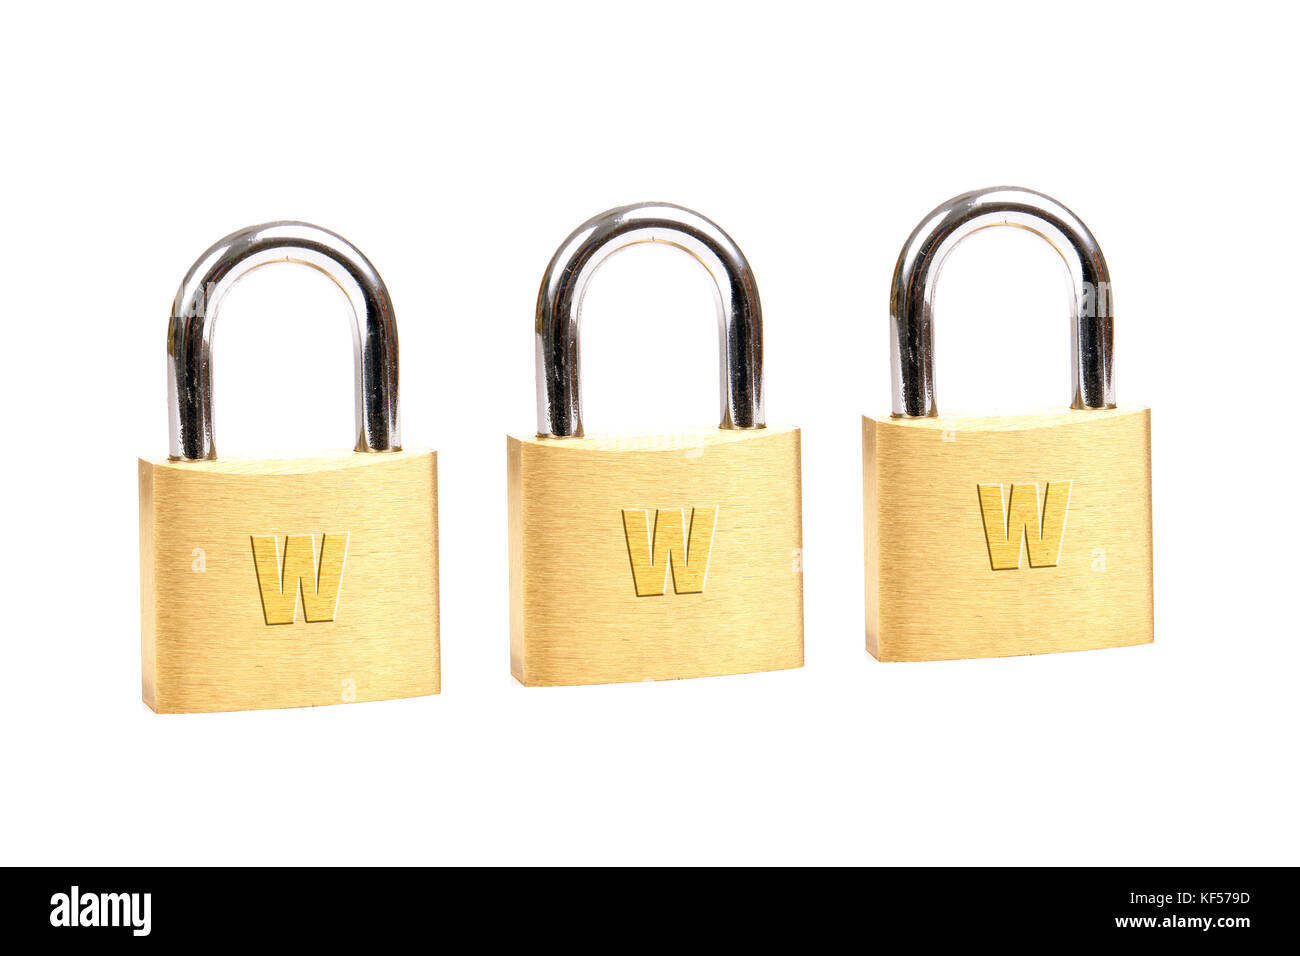 Three golden padlocks forming www word over white background - internet security concept - Stock Image